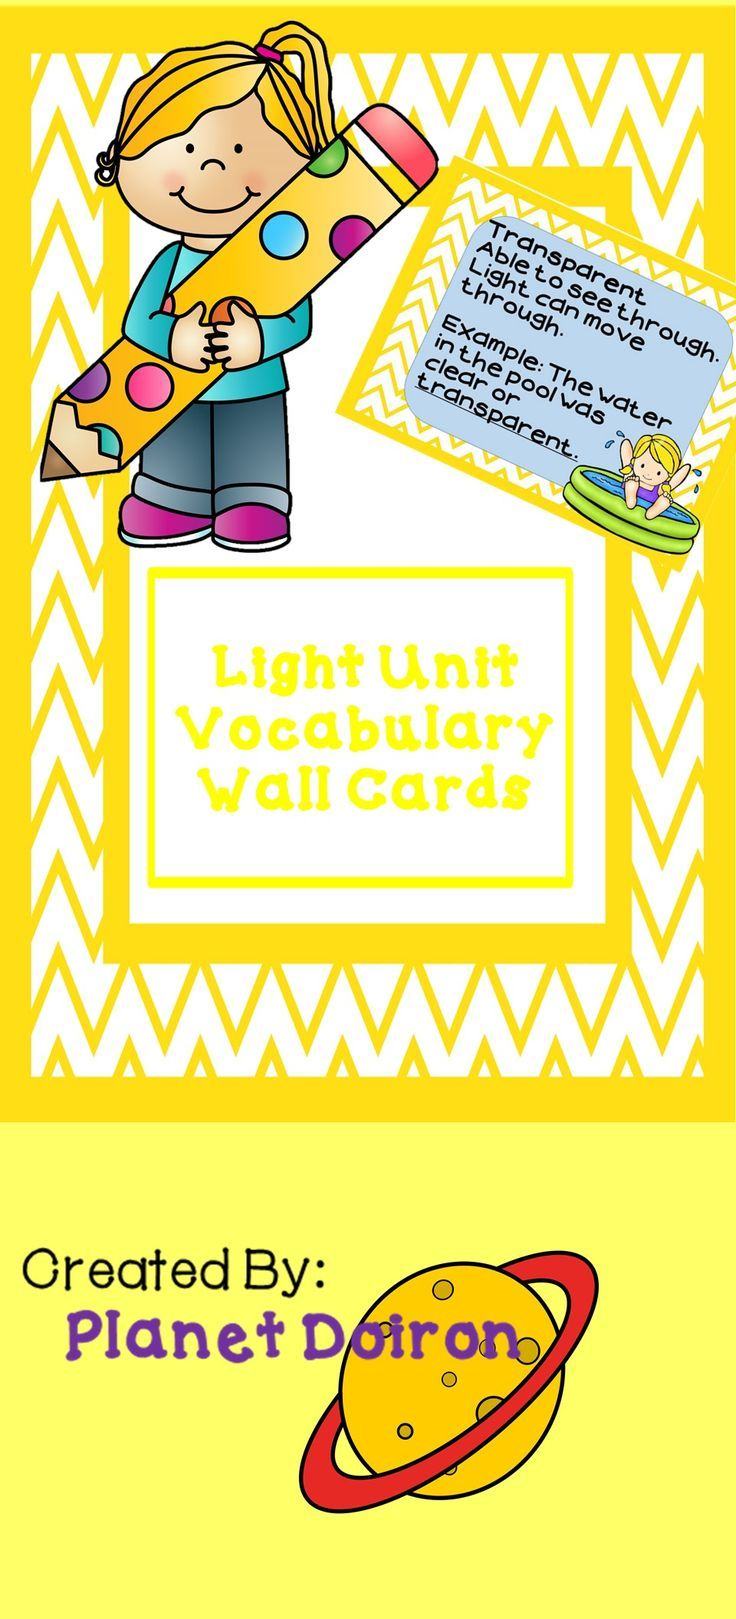 Elementary Physical Science Light Unit Vocabulary Wall Cards ...